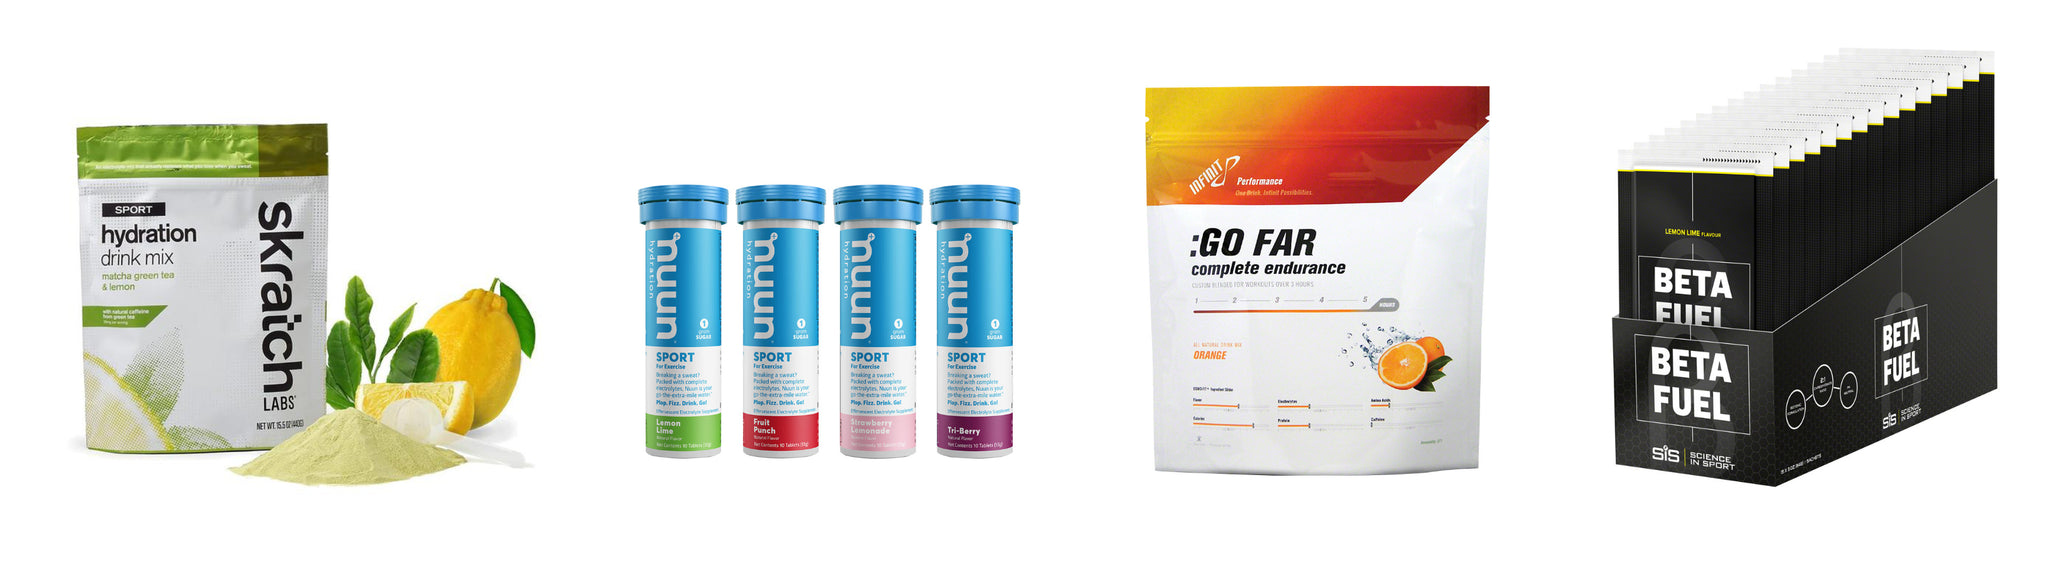 Best cycling hydration, carbohydrate, energy drink mix